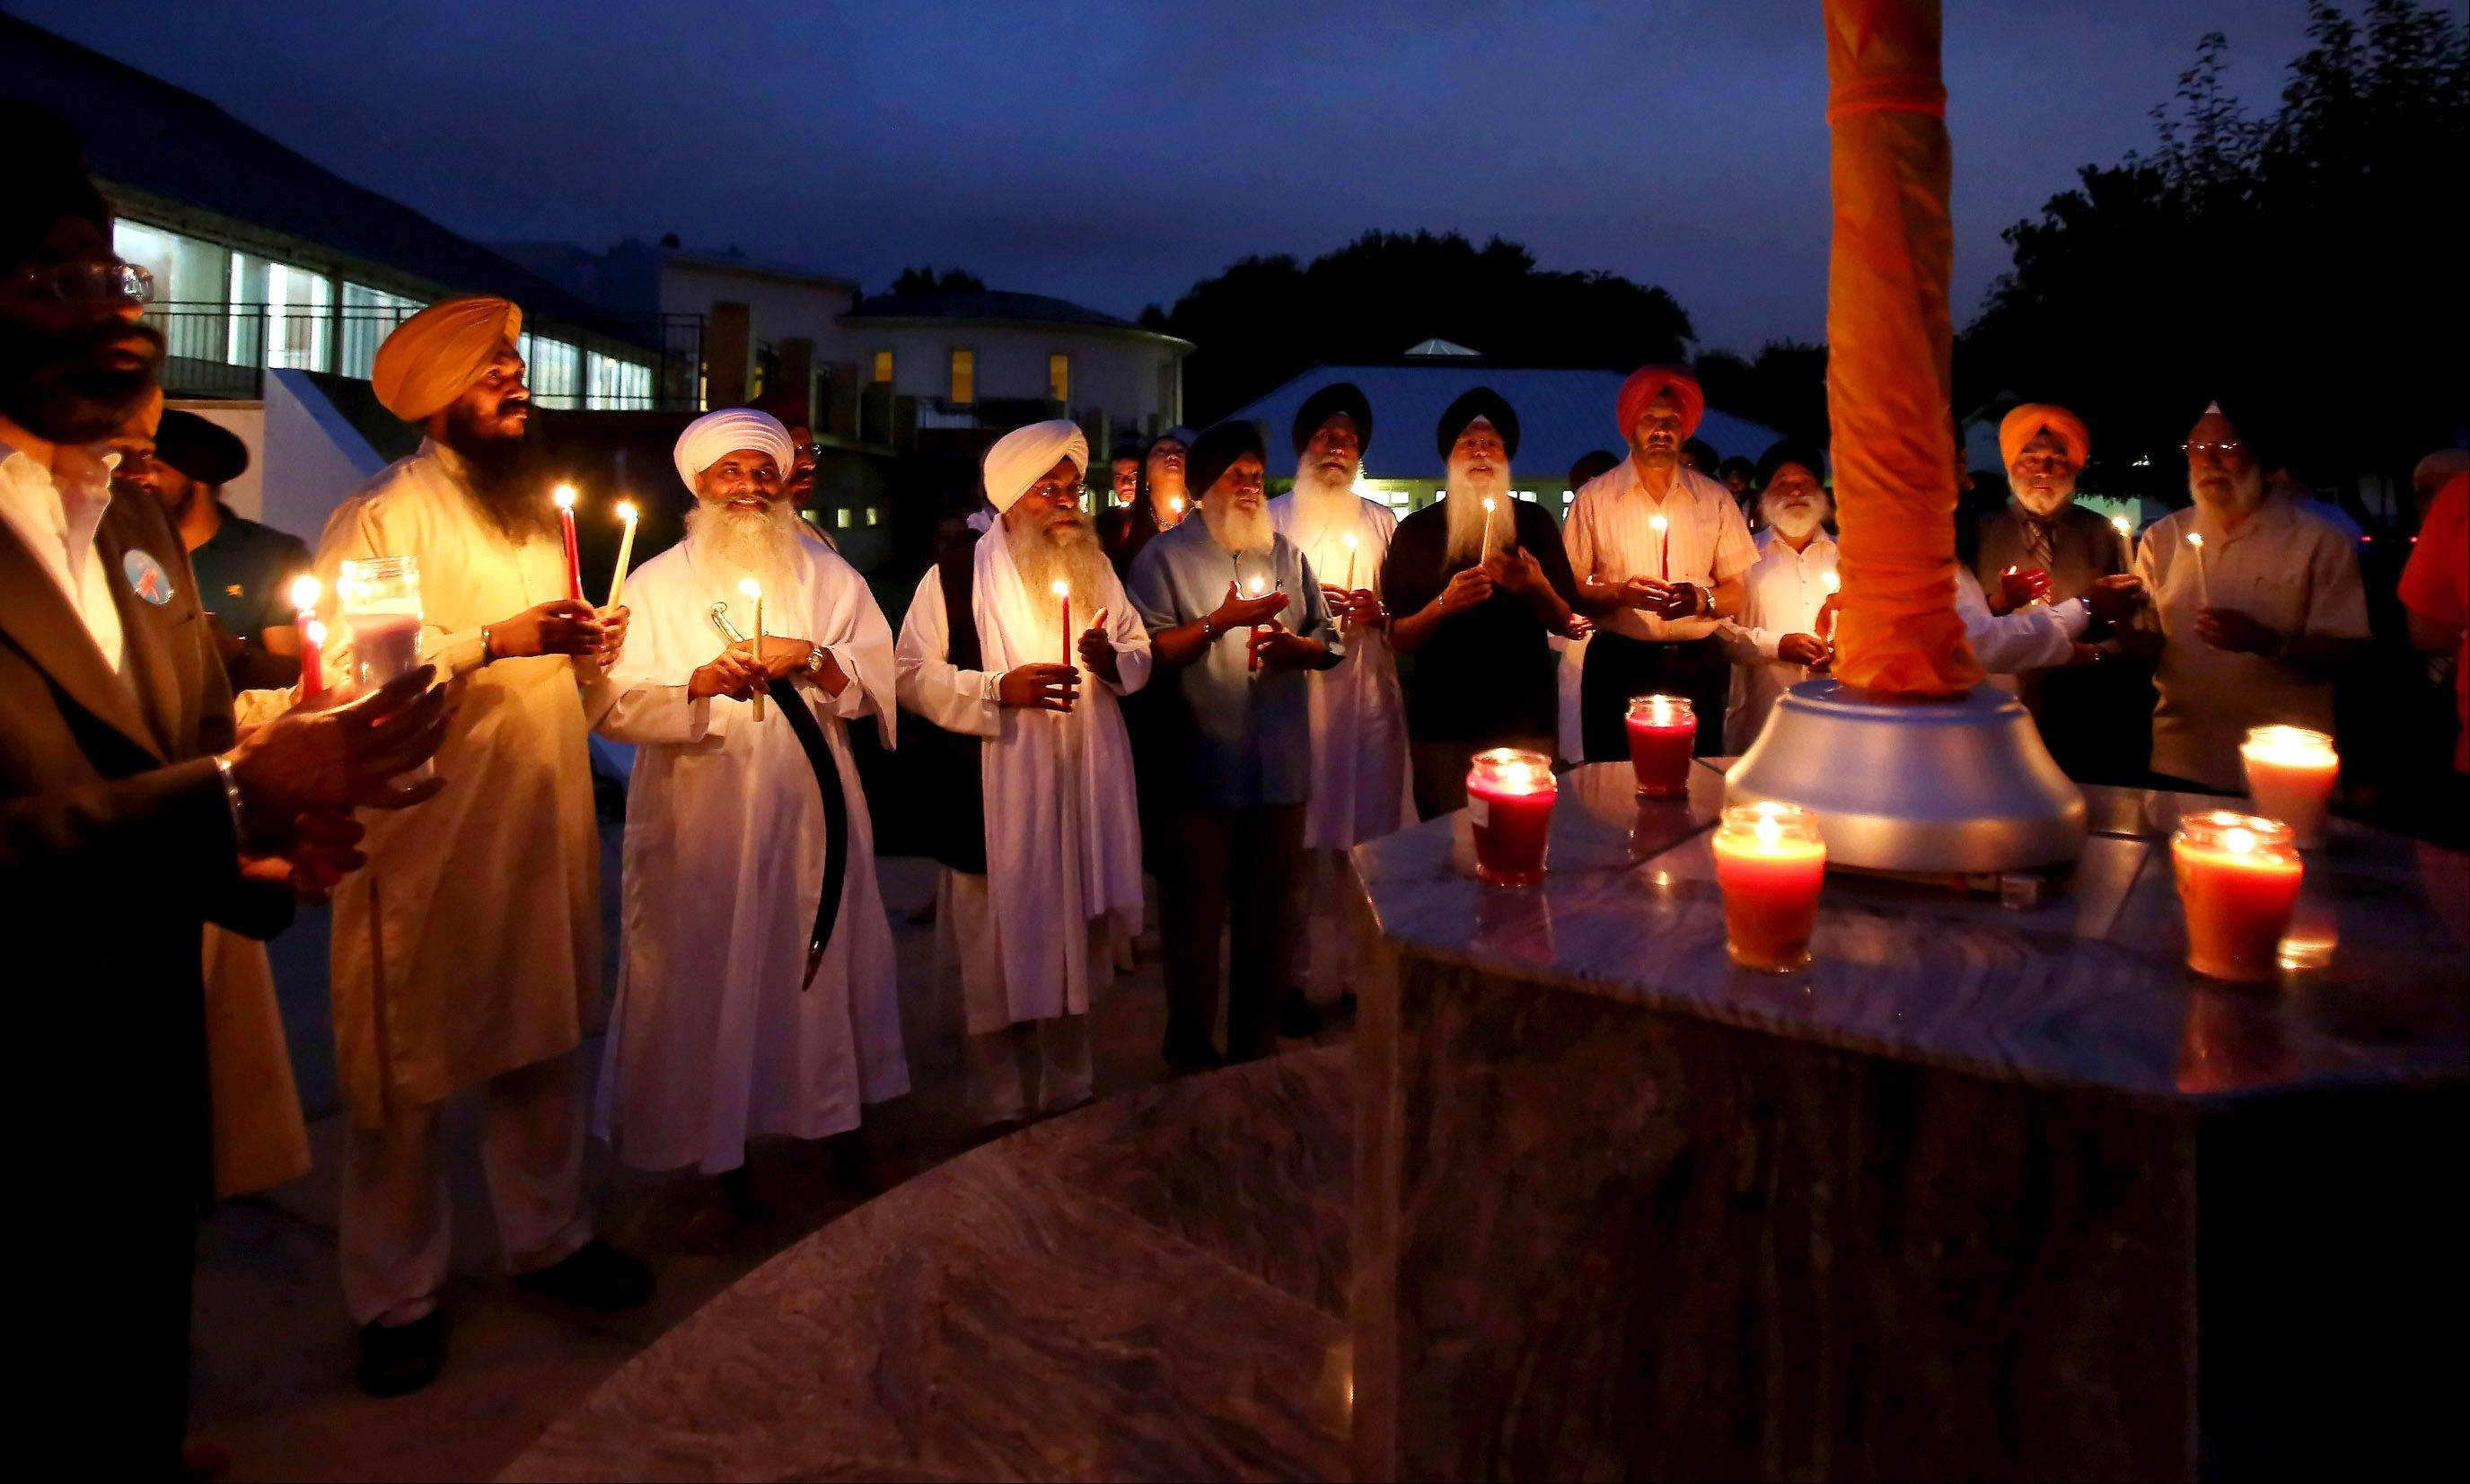 Members of the Gurudwara of Palatine hold a vigil to honor victims of the shooting at a Sikh temple in Milwaukee.